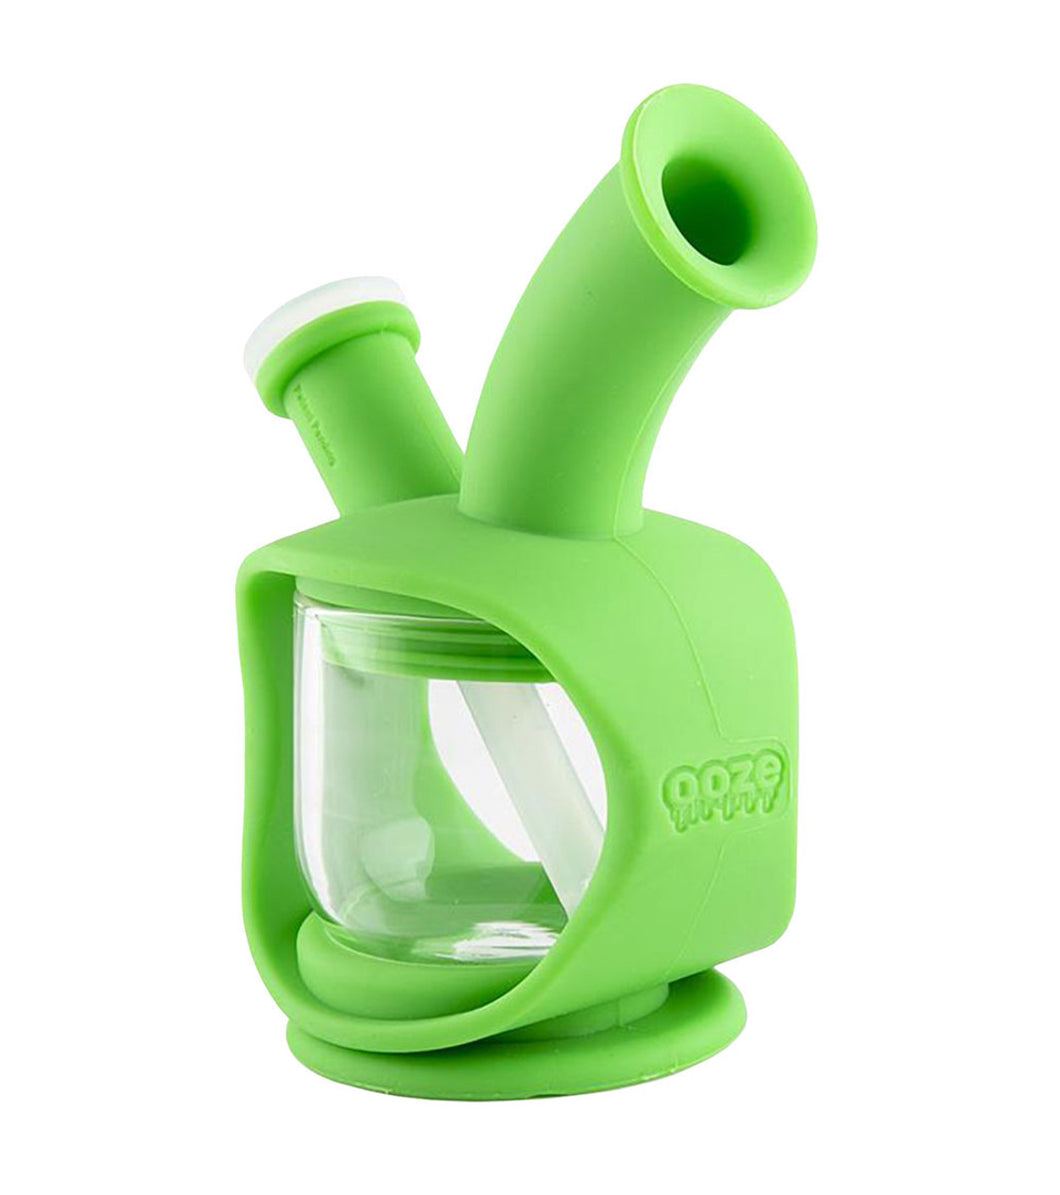 Ooze Silicone Kettle Waterpipe - 6.25